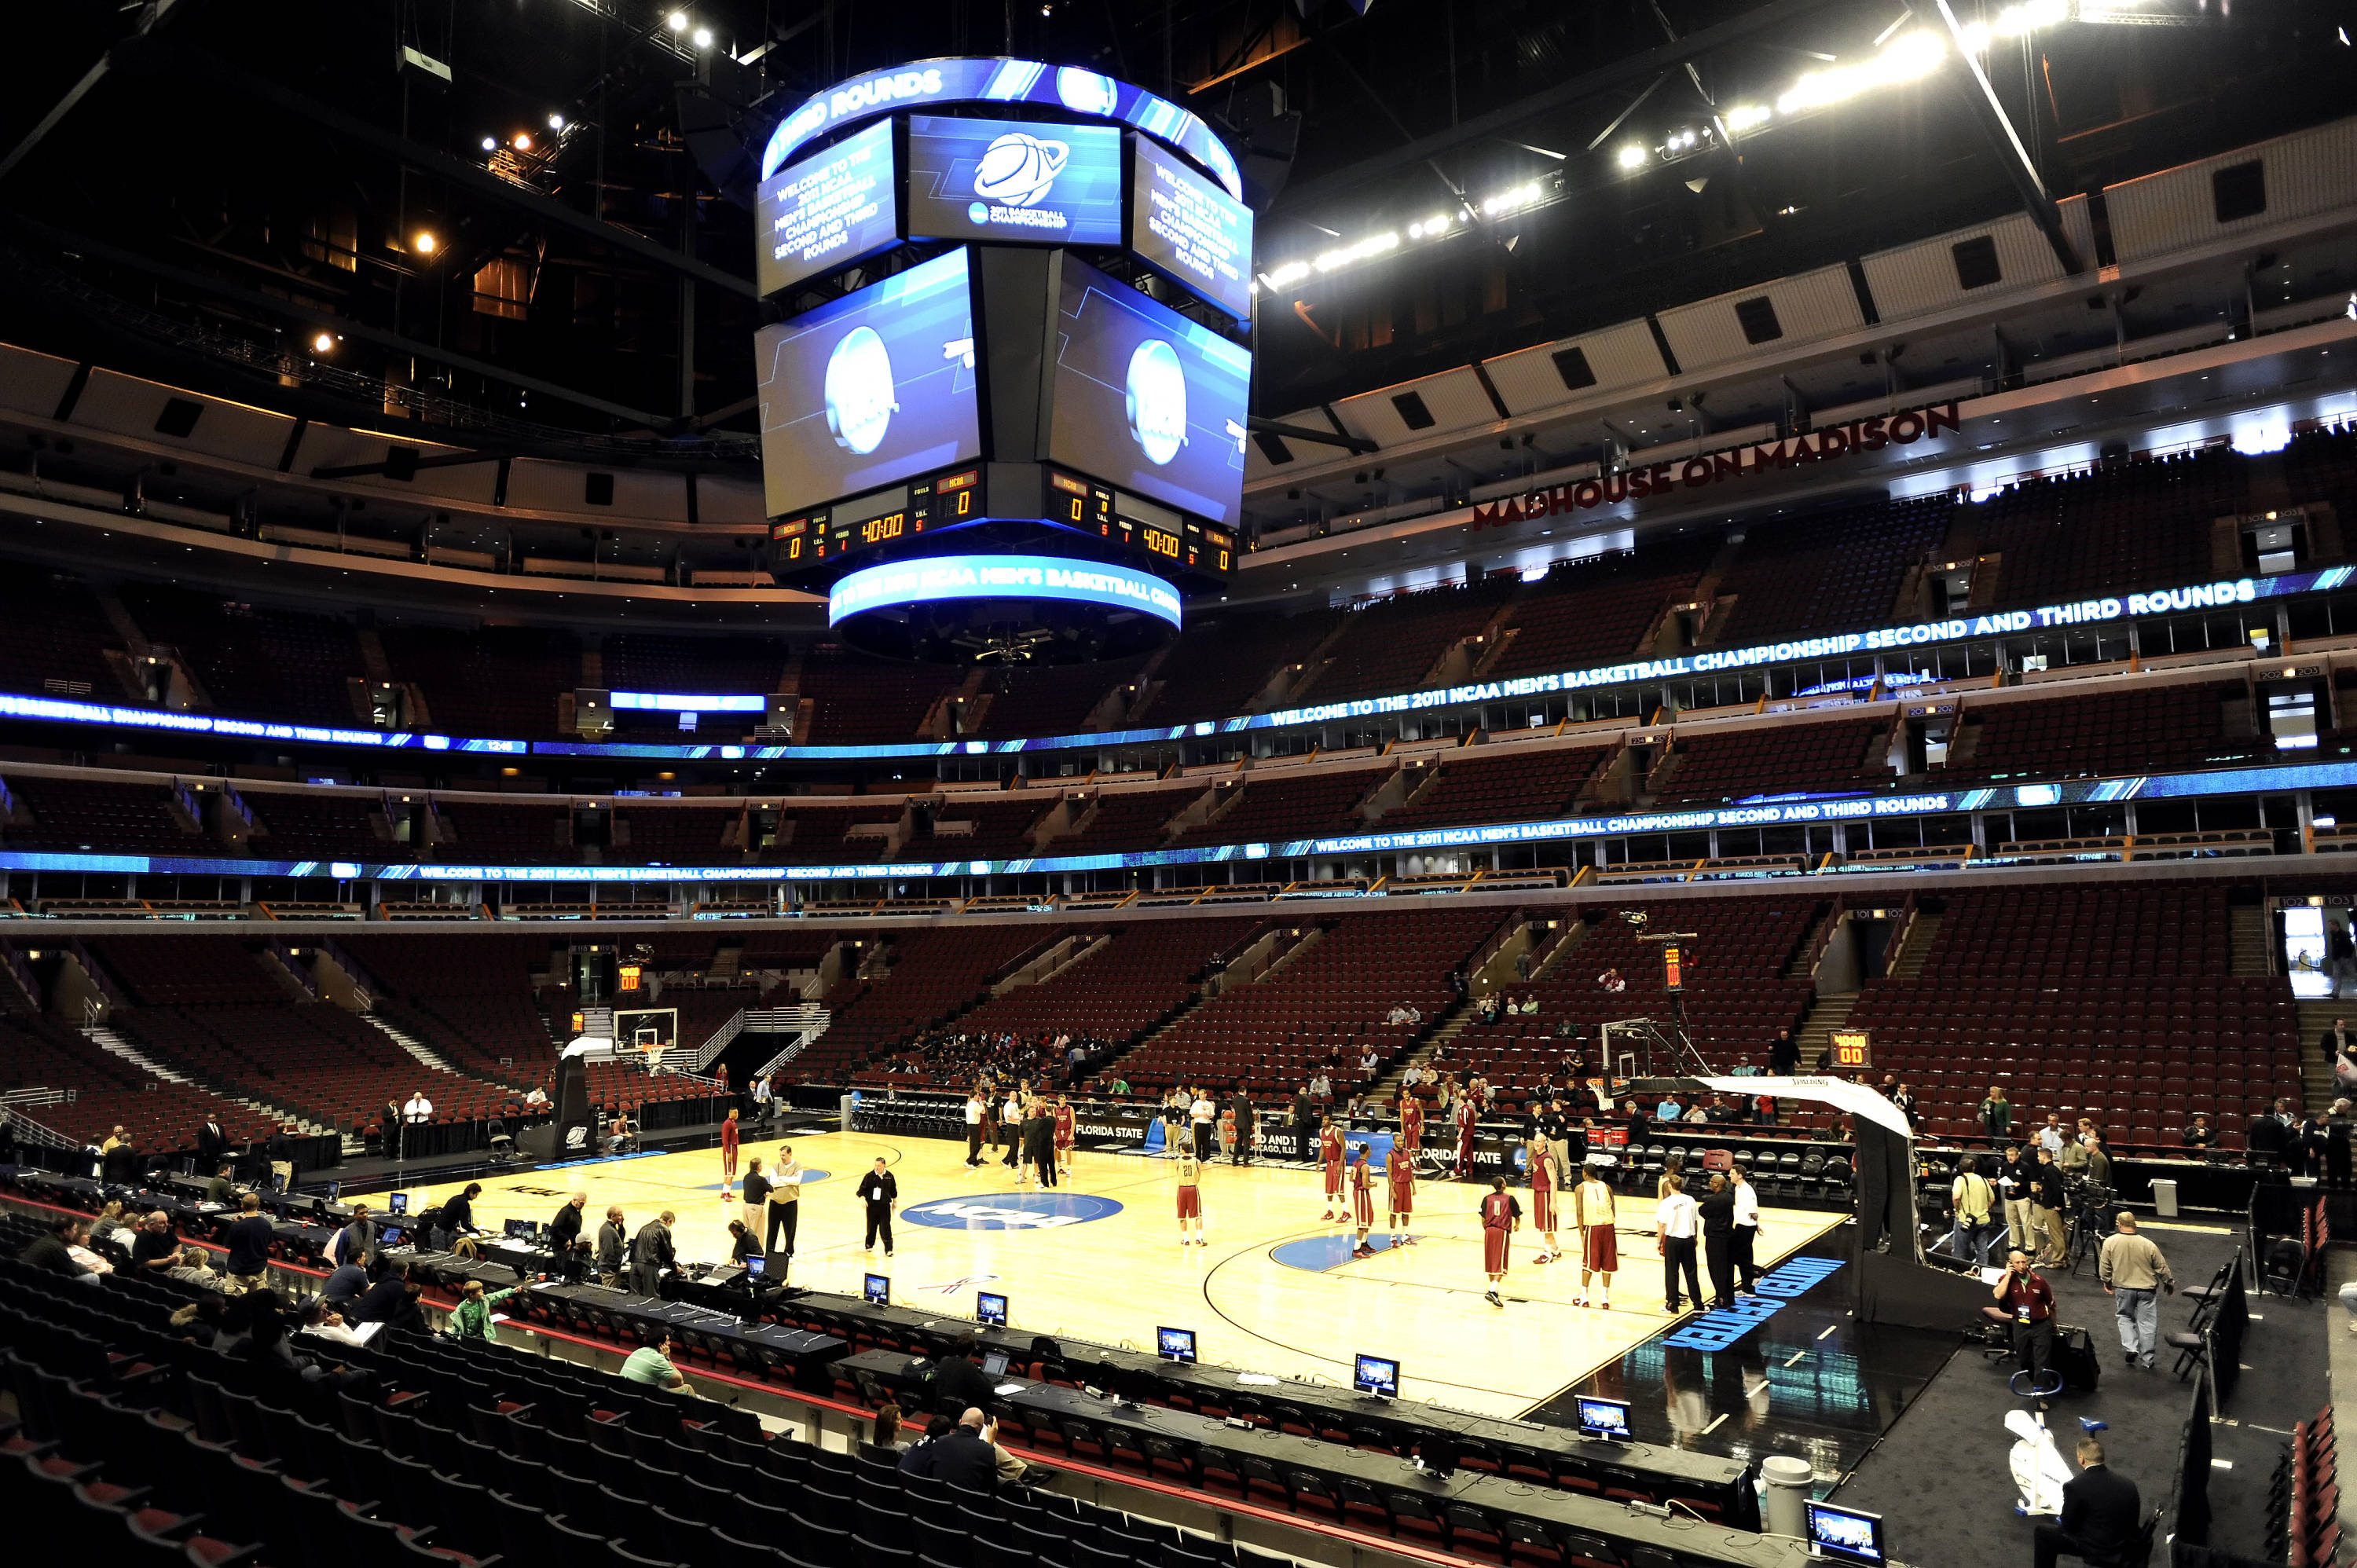 The Seminoles begin practice at the United Center